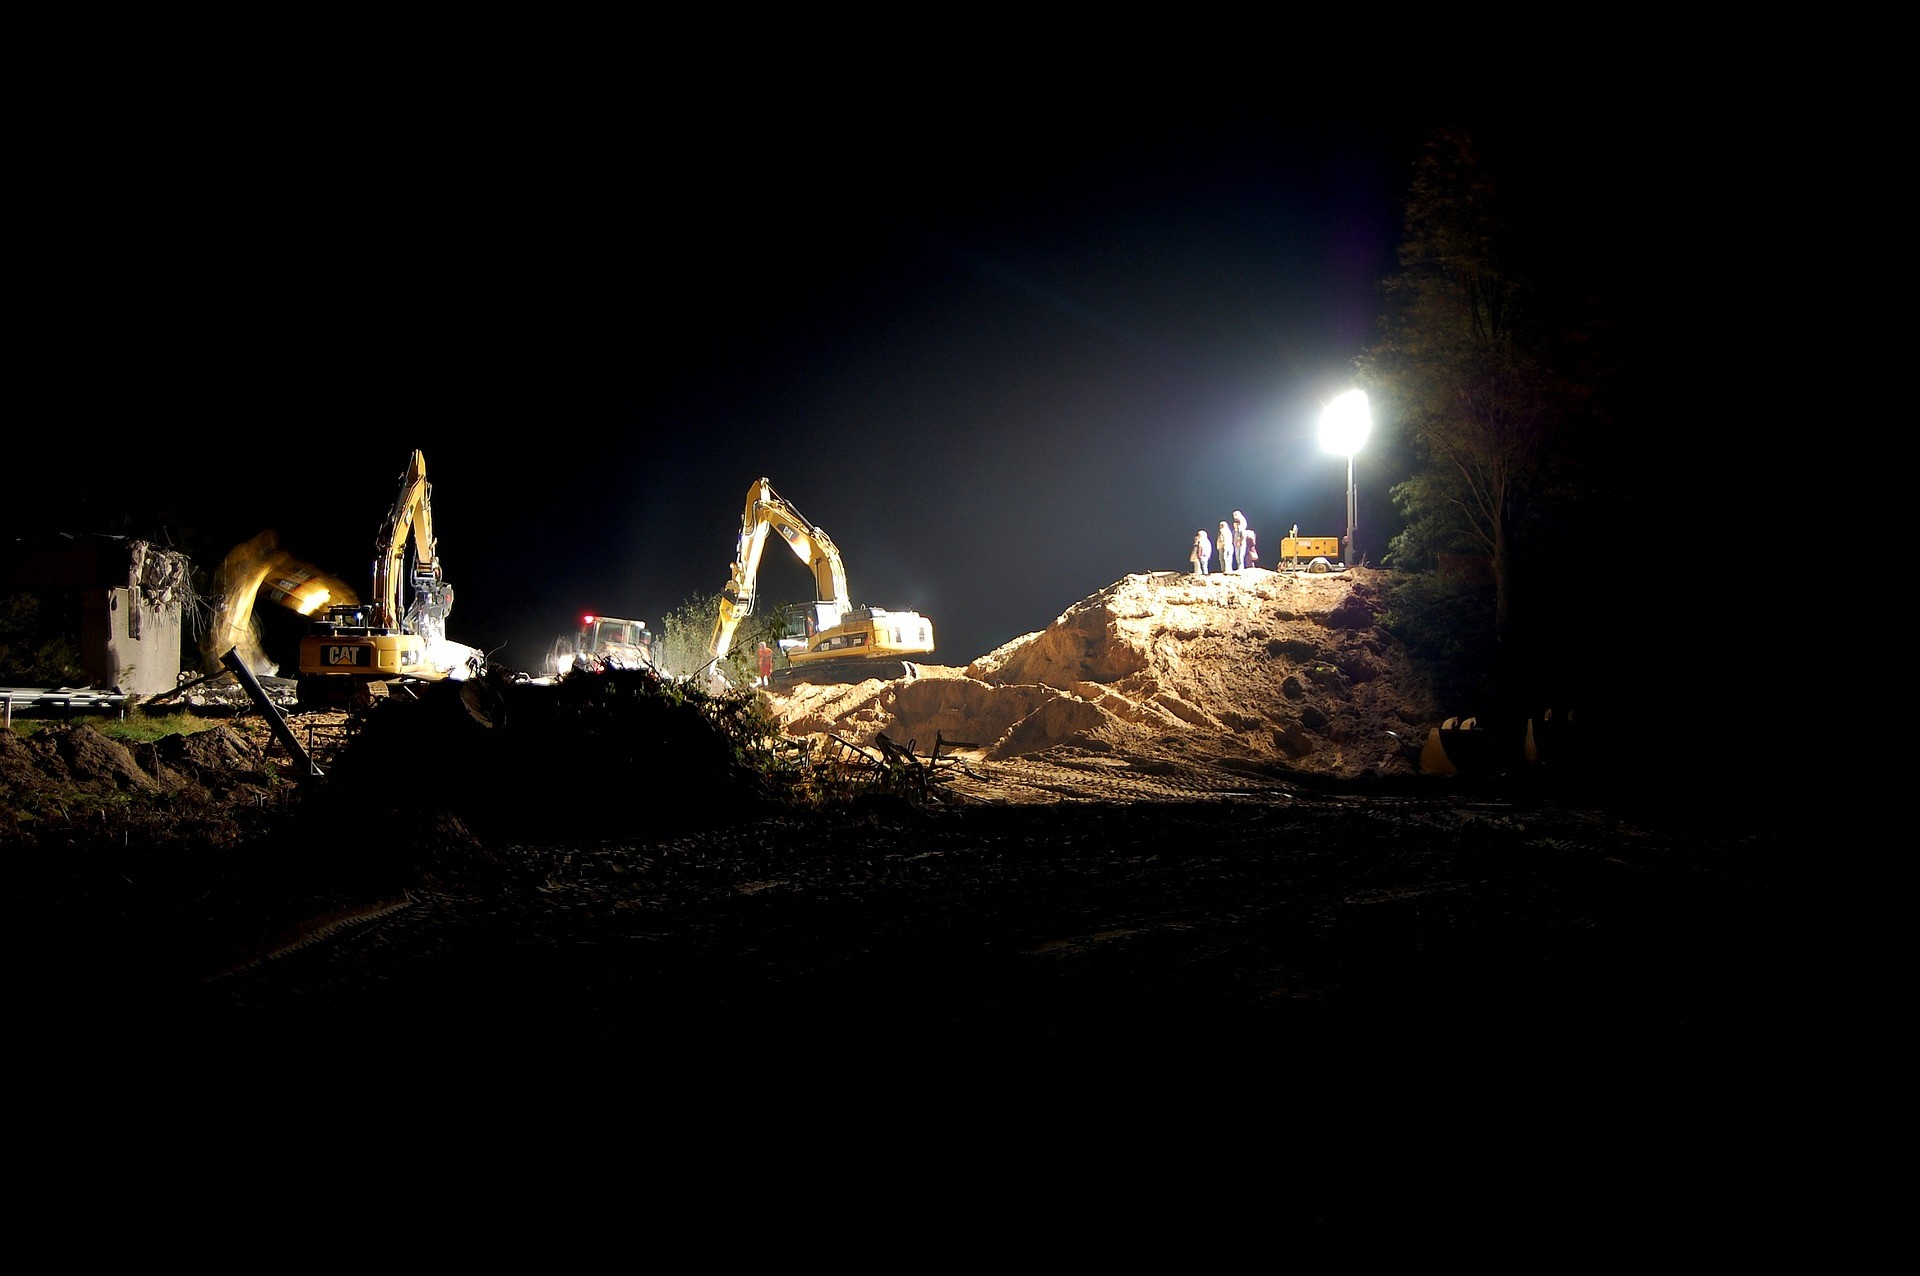 Night shift on a mine site